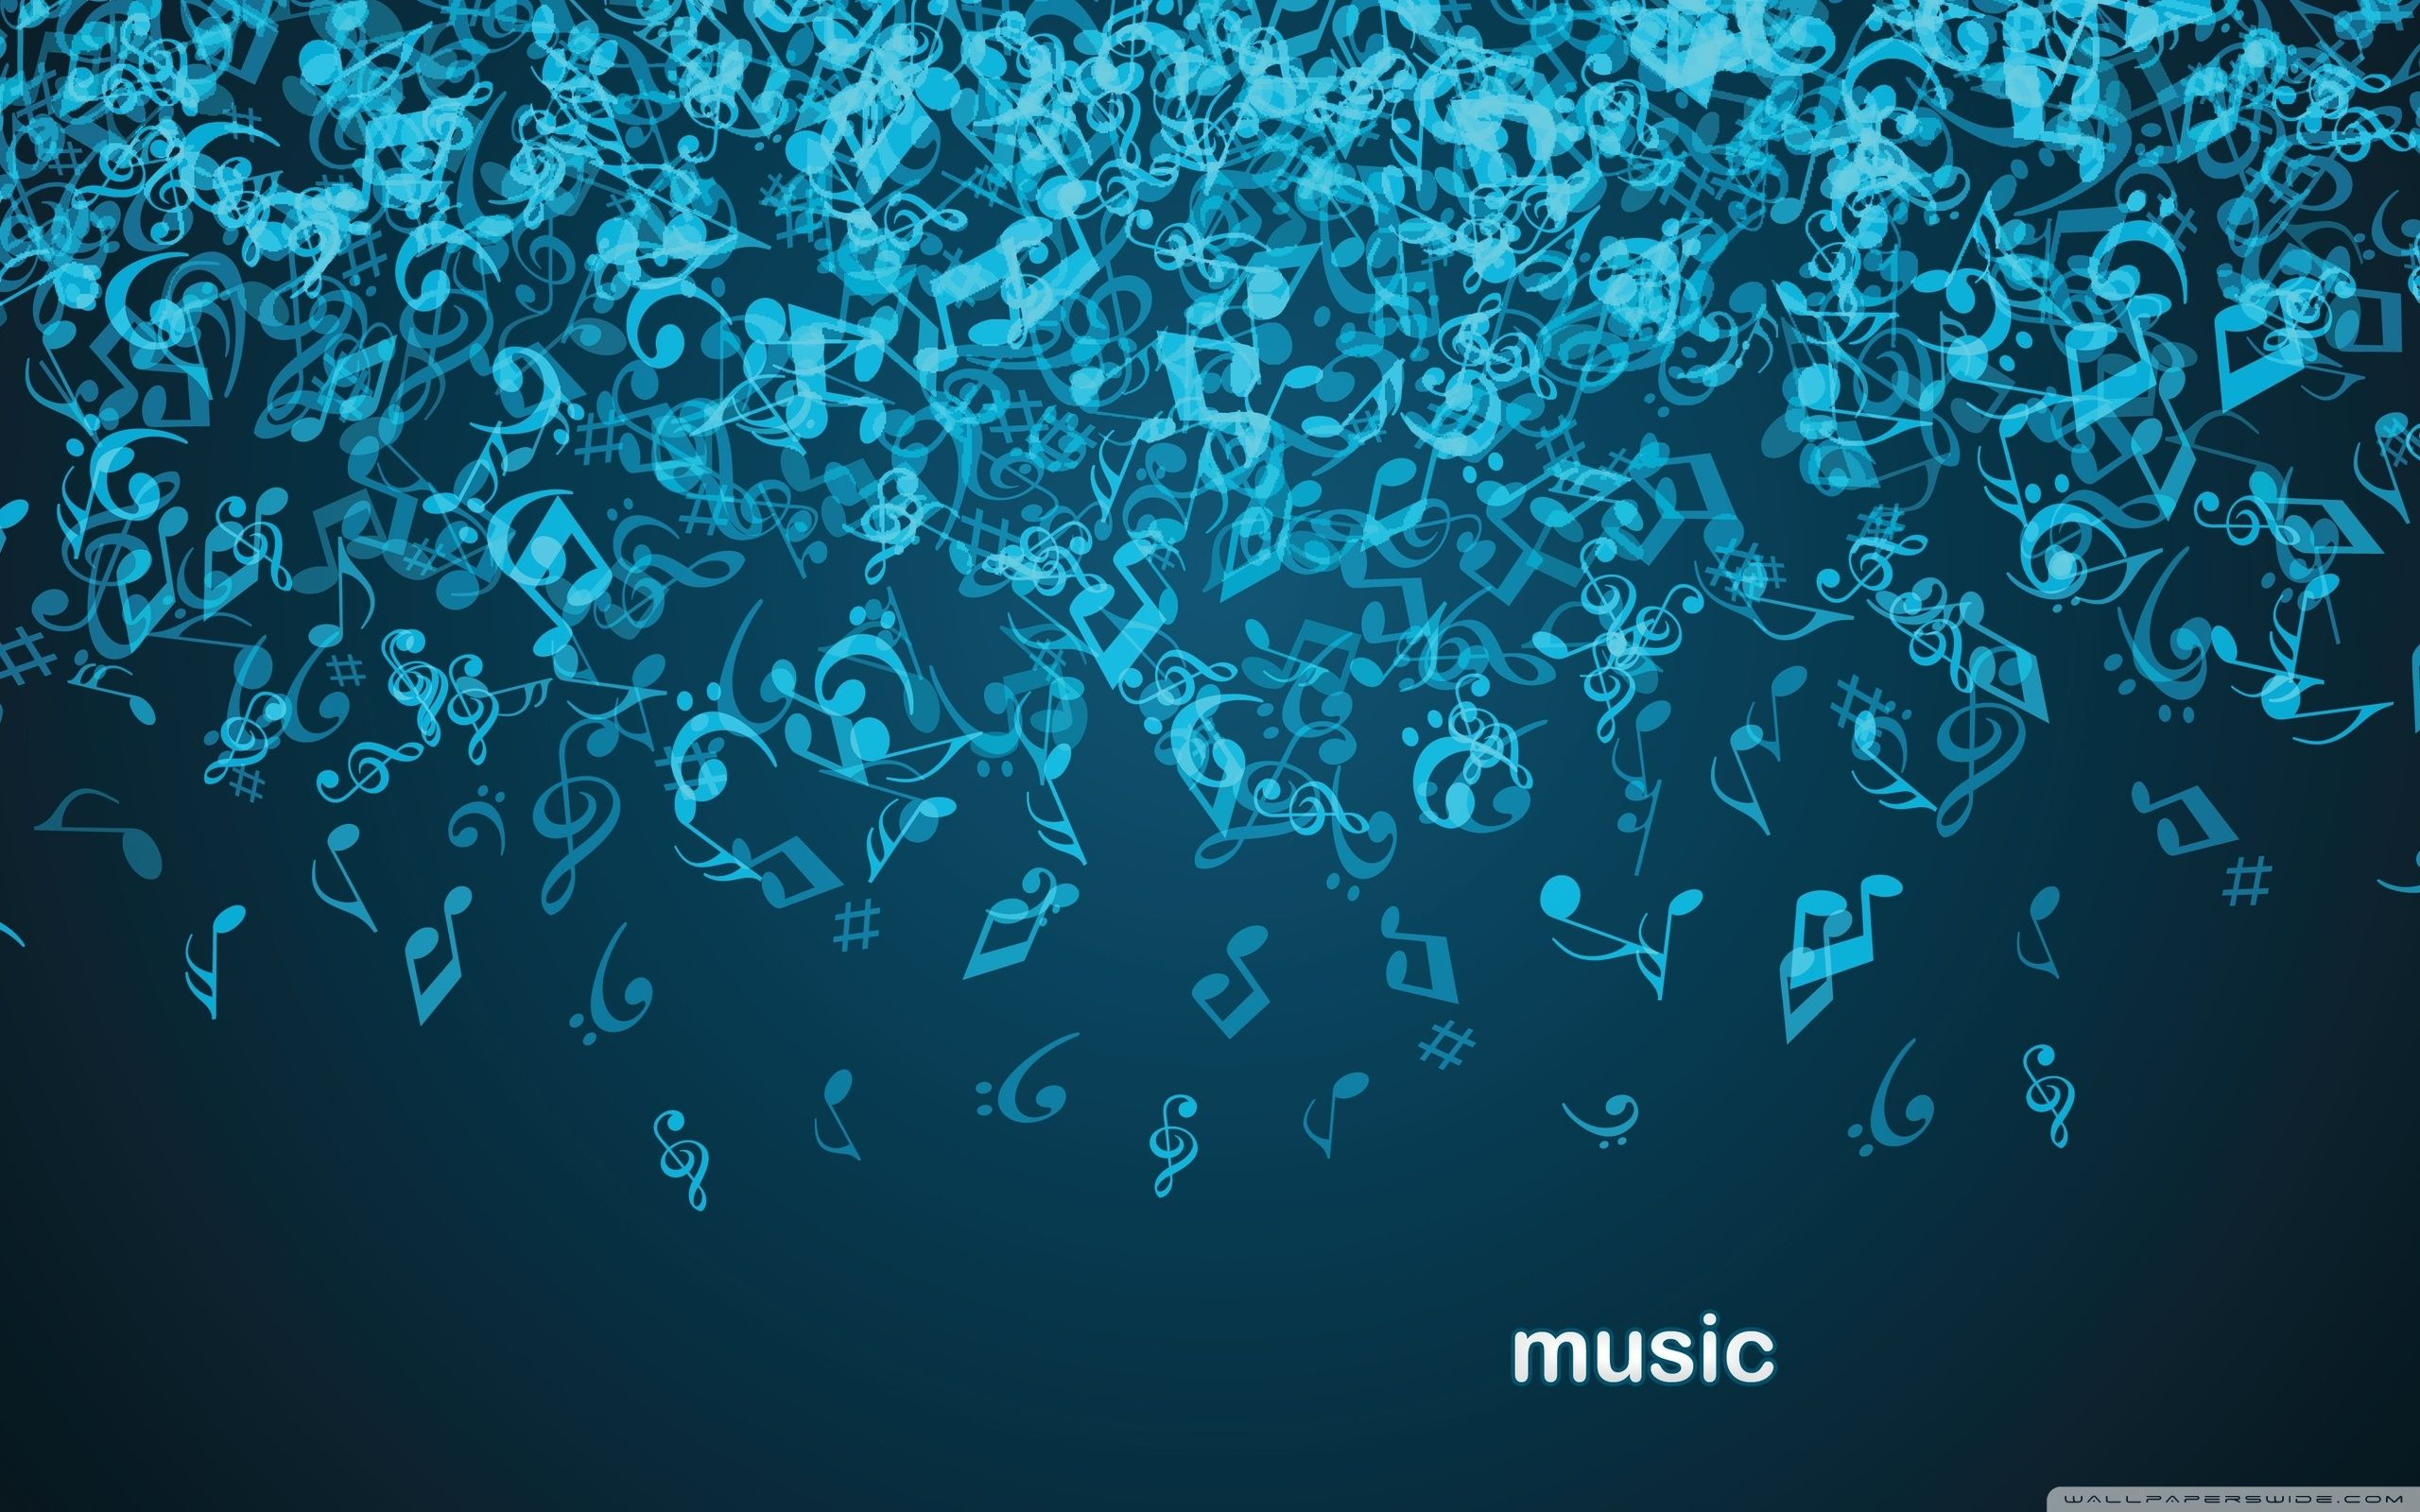 10 top music note wallpaper hd full hd 1080p for pc - Music hd wallpapers free download ...